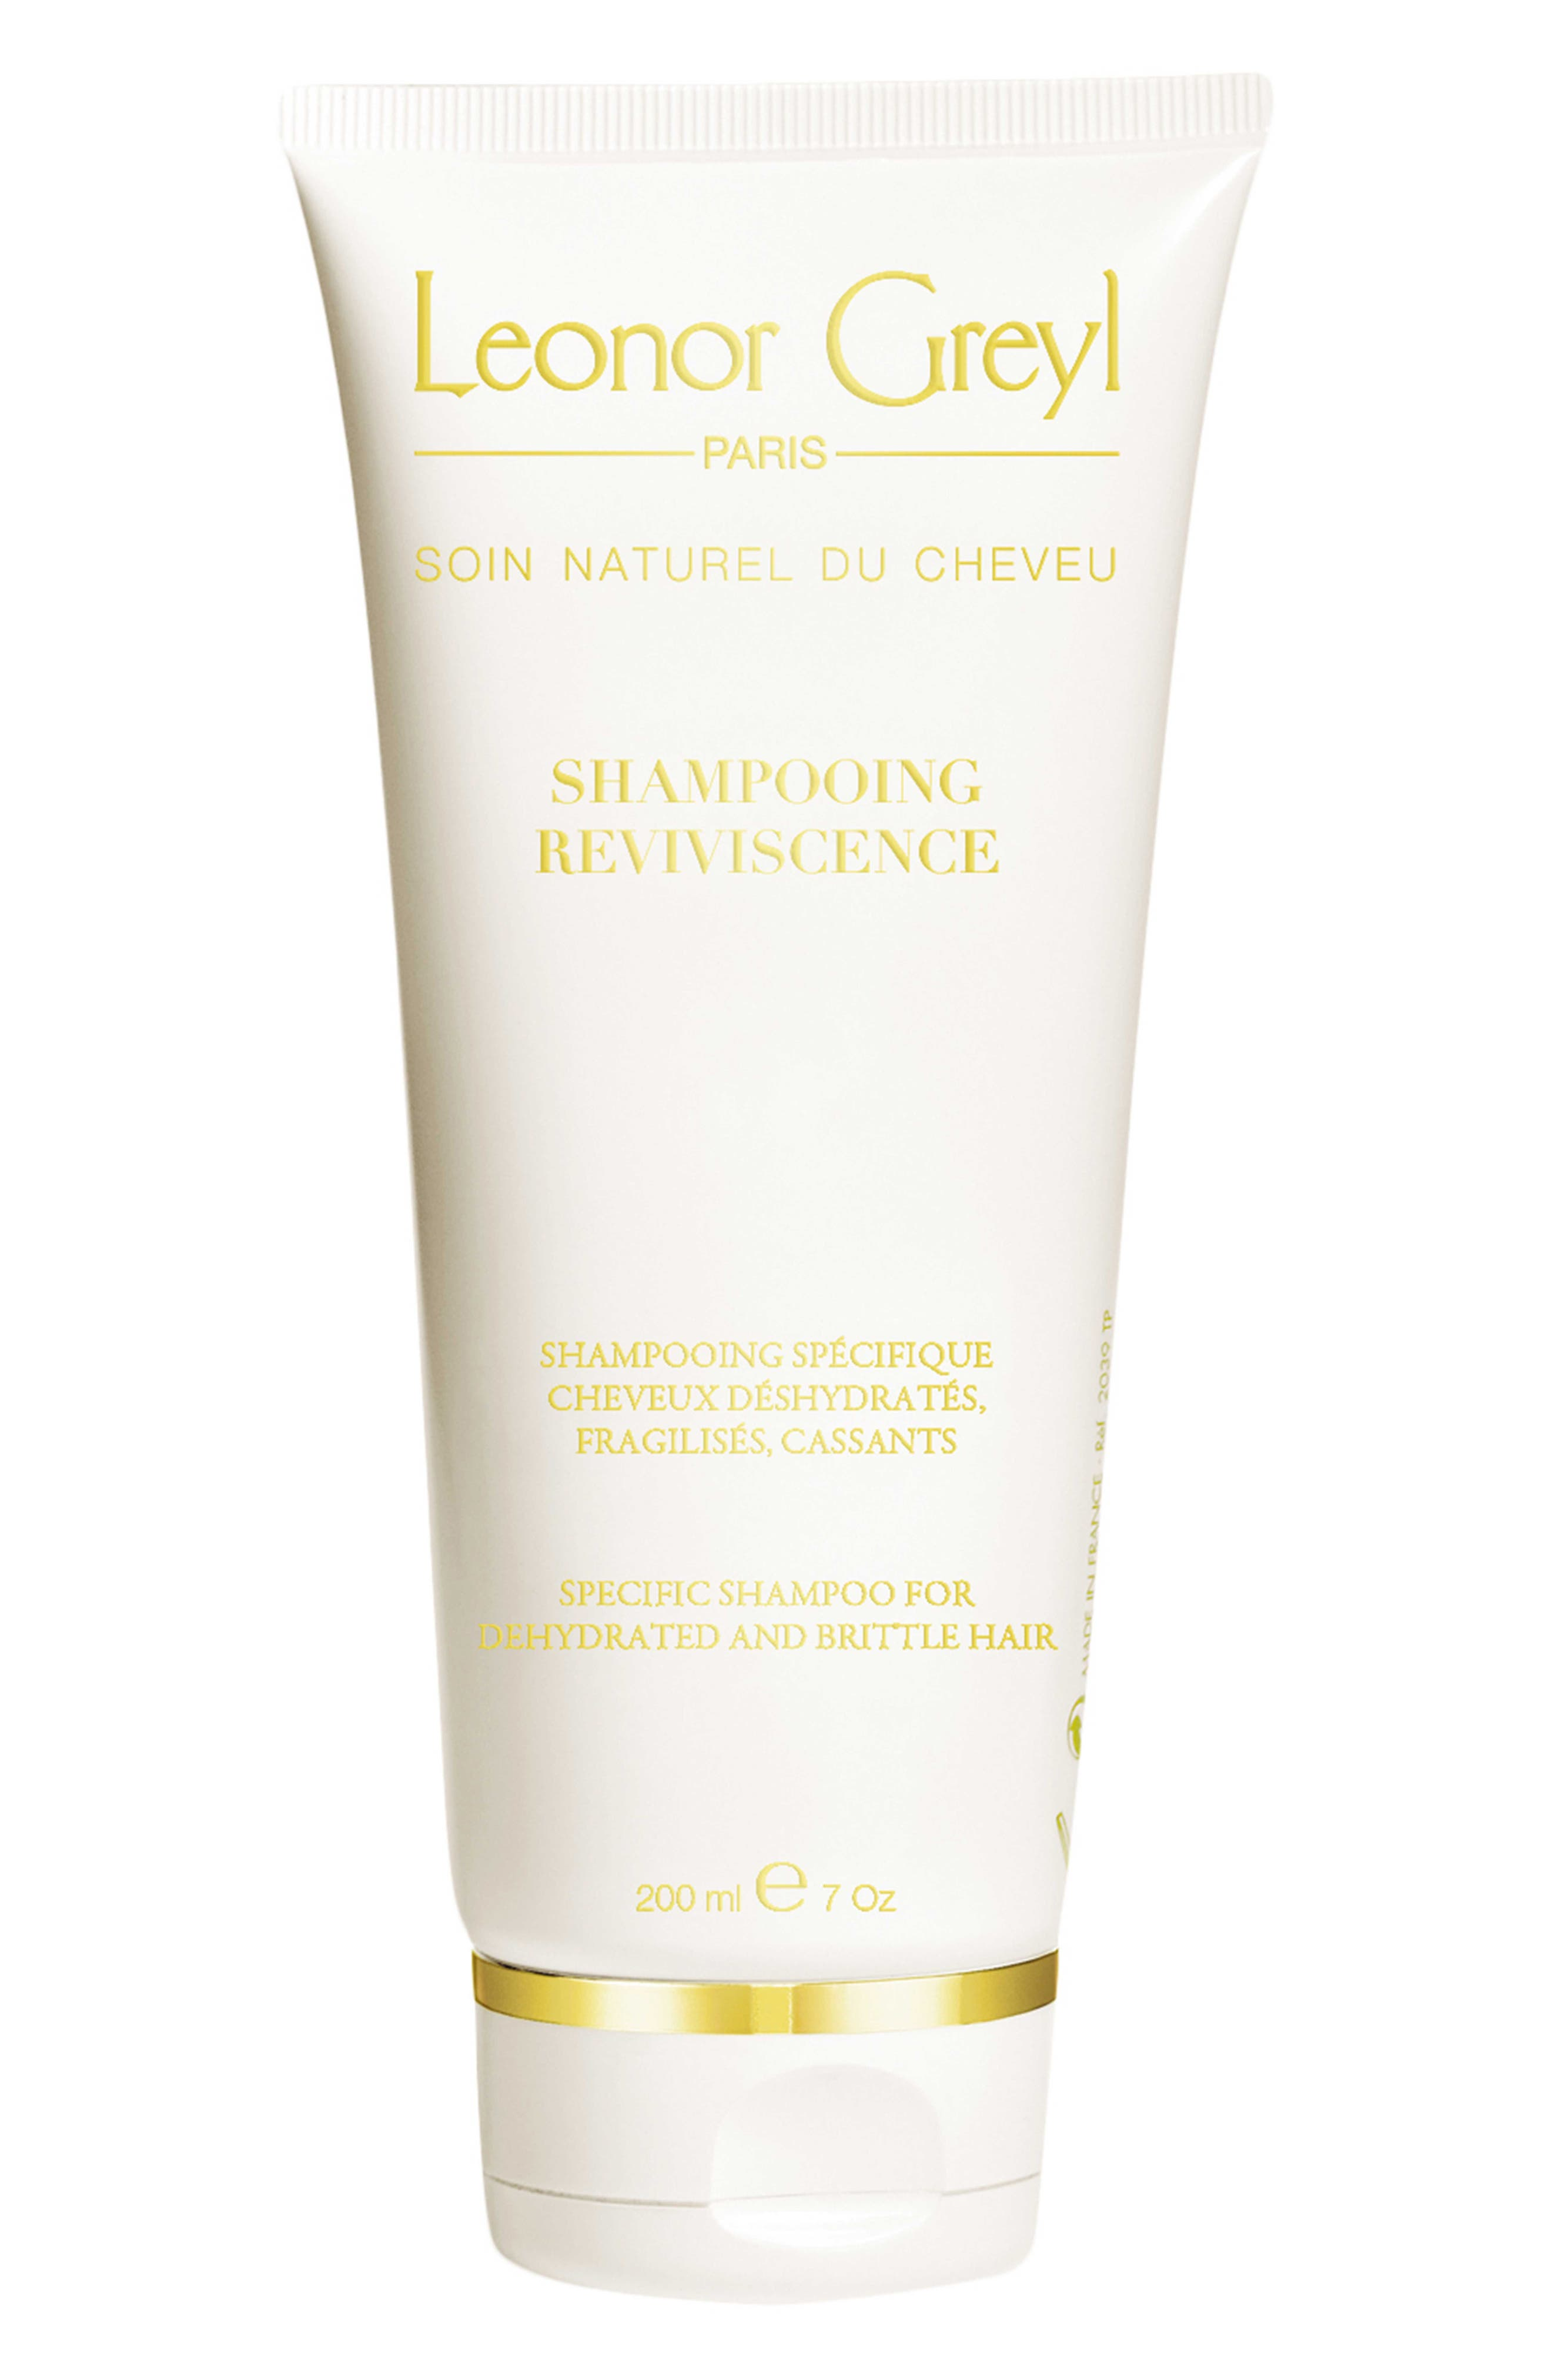 LEONOR GREYL Shampooing Reviviscence (Shampoo For Dehydrated And Brittle Hair), 7.0 Oz./ 200 Ml